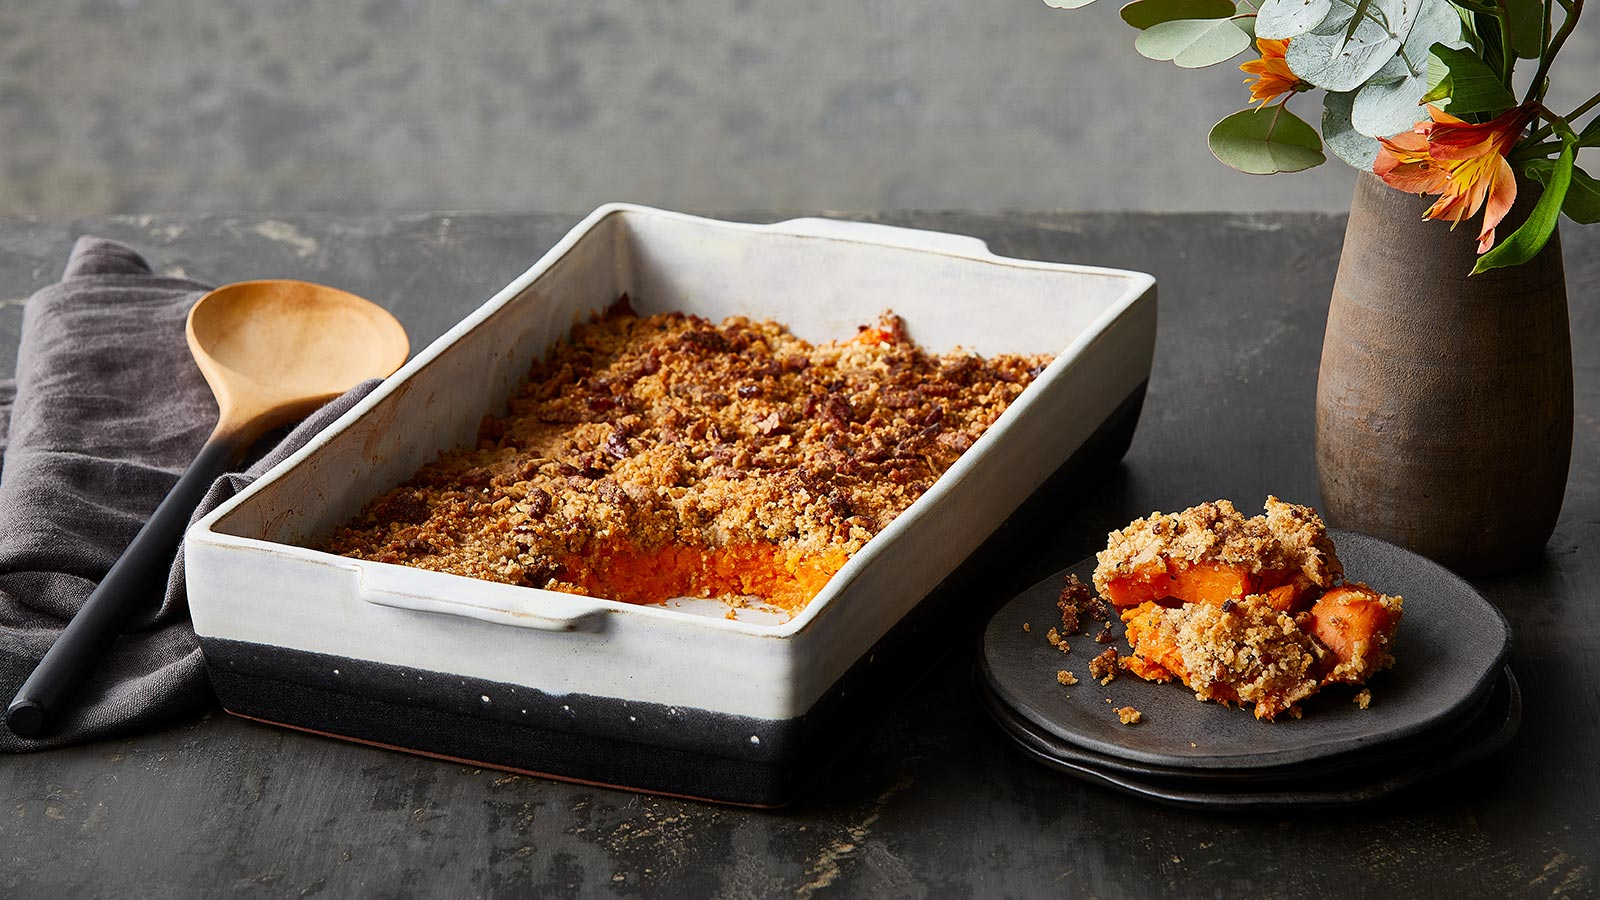 Sweet Potato Bake with Savory Rosemary and Bacon Crumble